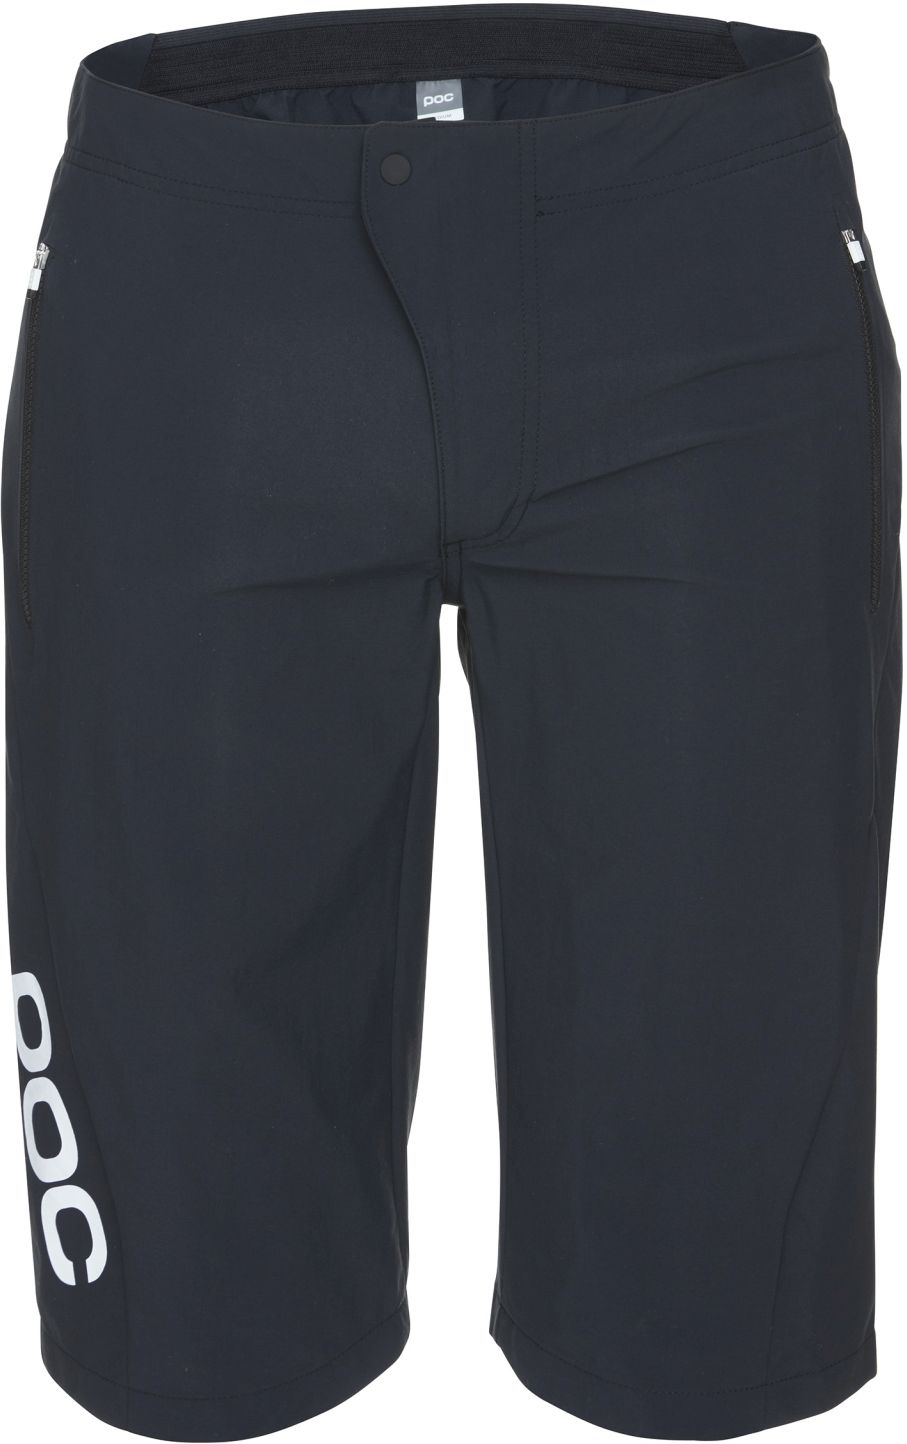 POC Essential Enduro Shorts - uranium black XS